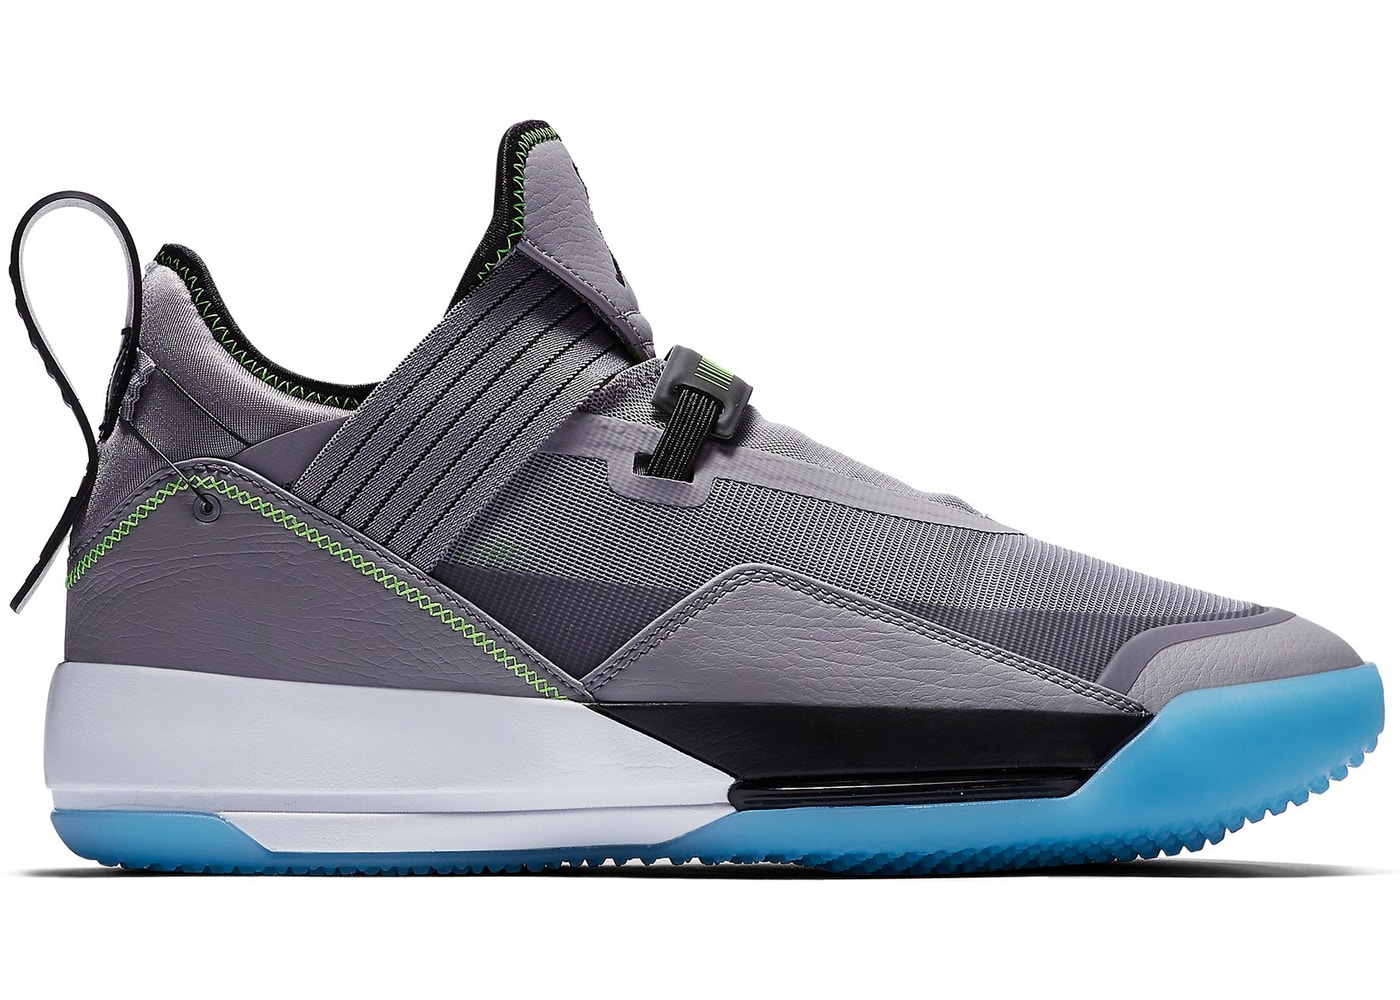 f68531dc3 Sell. or Ask. Size: 10.5. View All Bids. Jordan XXXIII SE Cement Grey